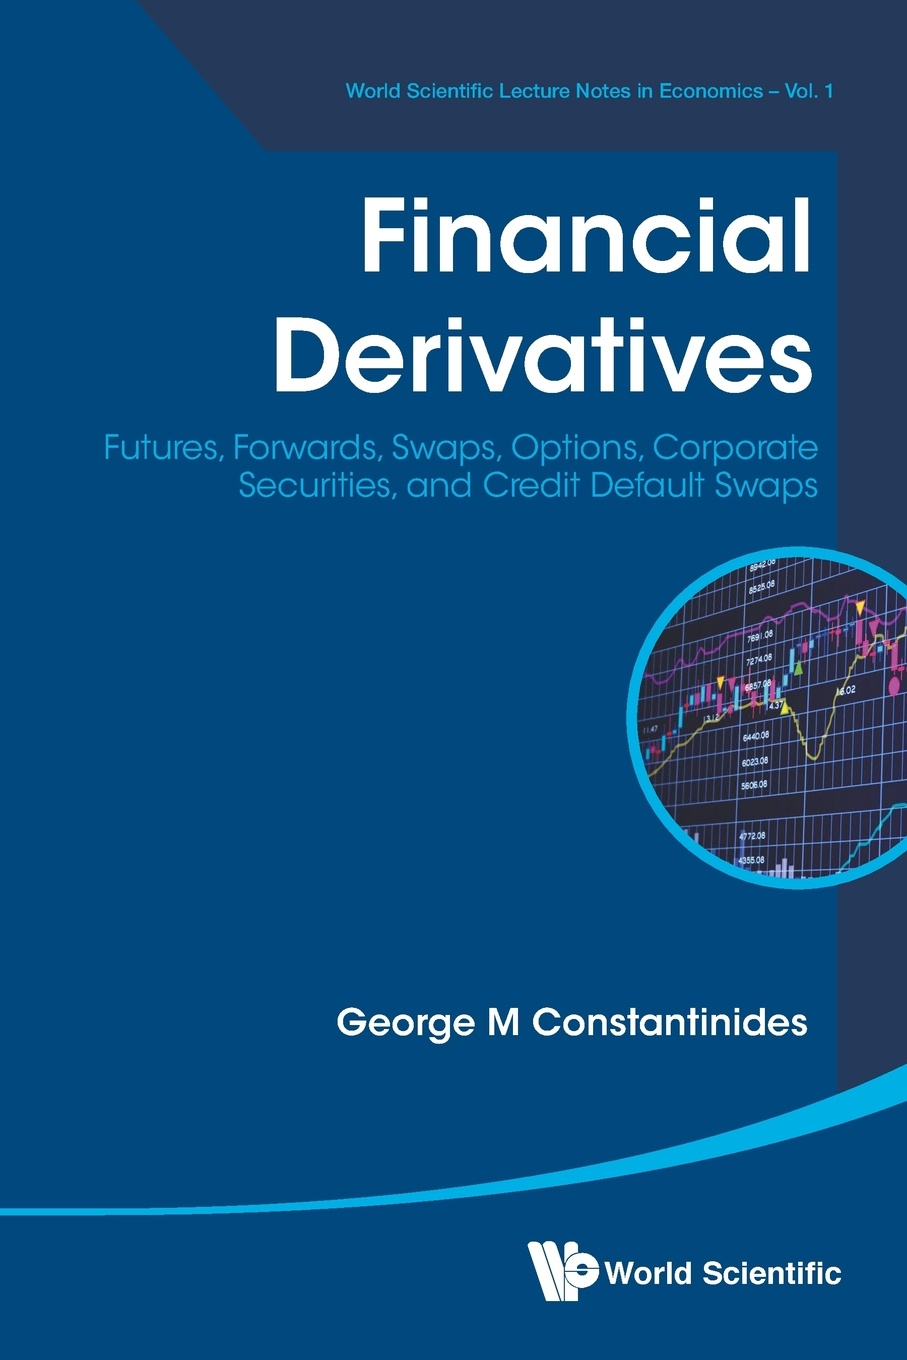 GEORGE MICHAEL CONSTANTINIDES Financial Derivatives. Futures, Forwards, Swaps, Options, Corporate Securities, and Credit Default Swaps geoff chaplin credit derivatives trading investing and risk management